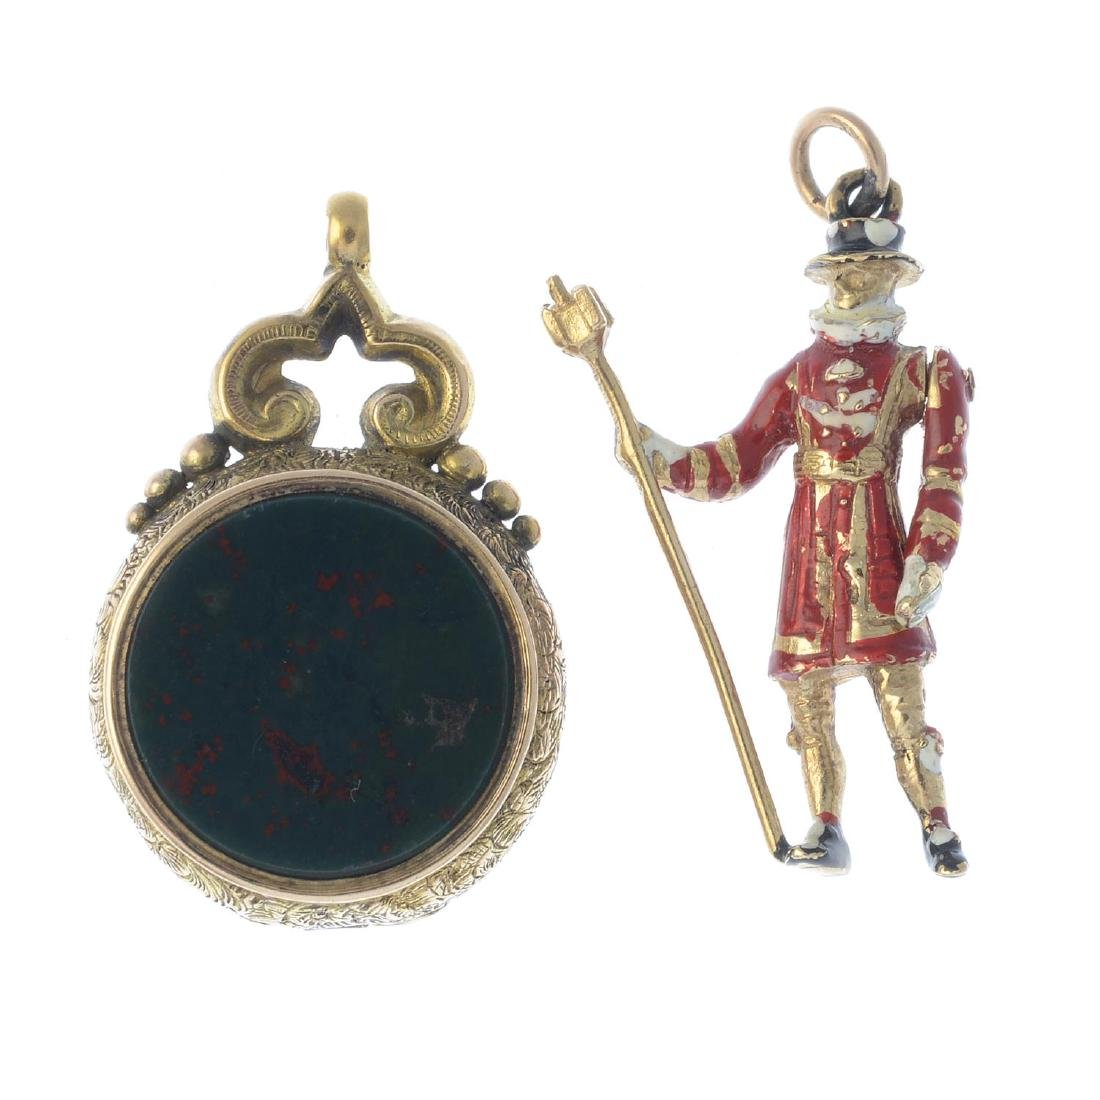 A late Victorian 15ct gold hardstone fob and 9ct gold